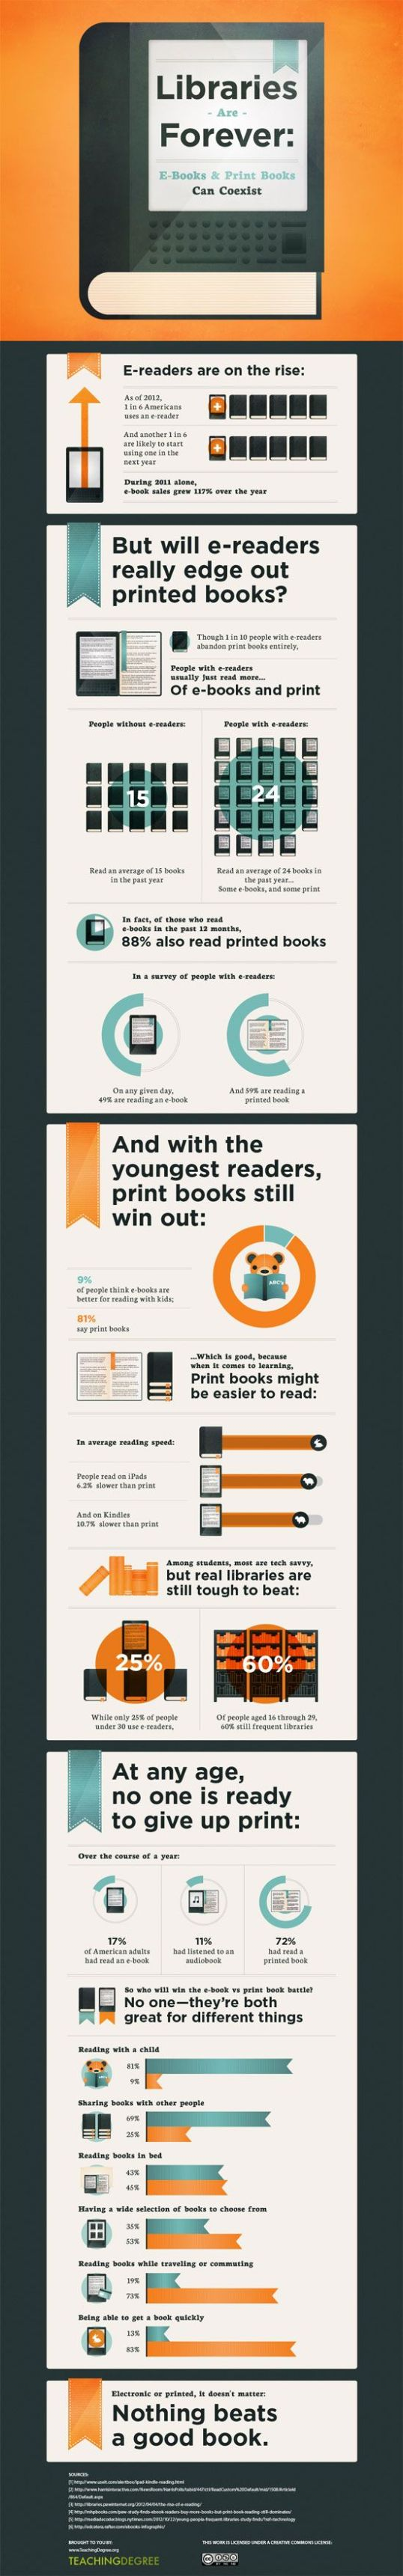 Print vs ebook infographic